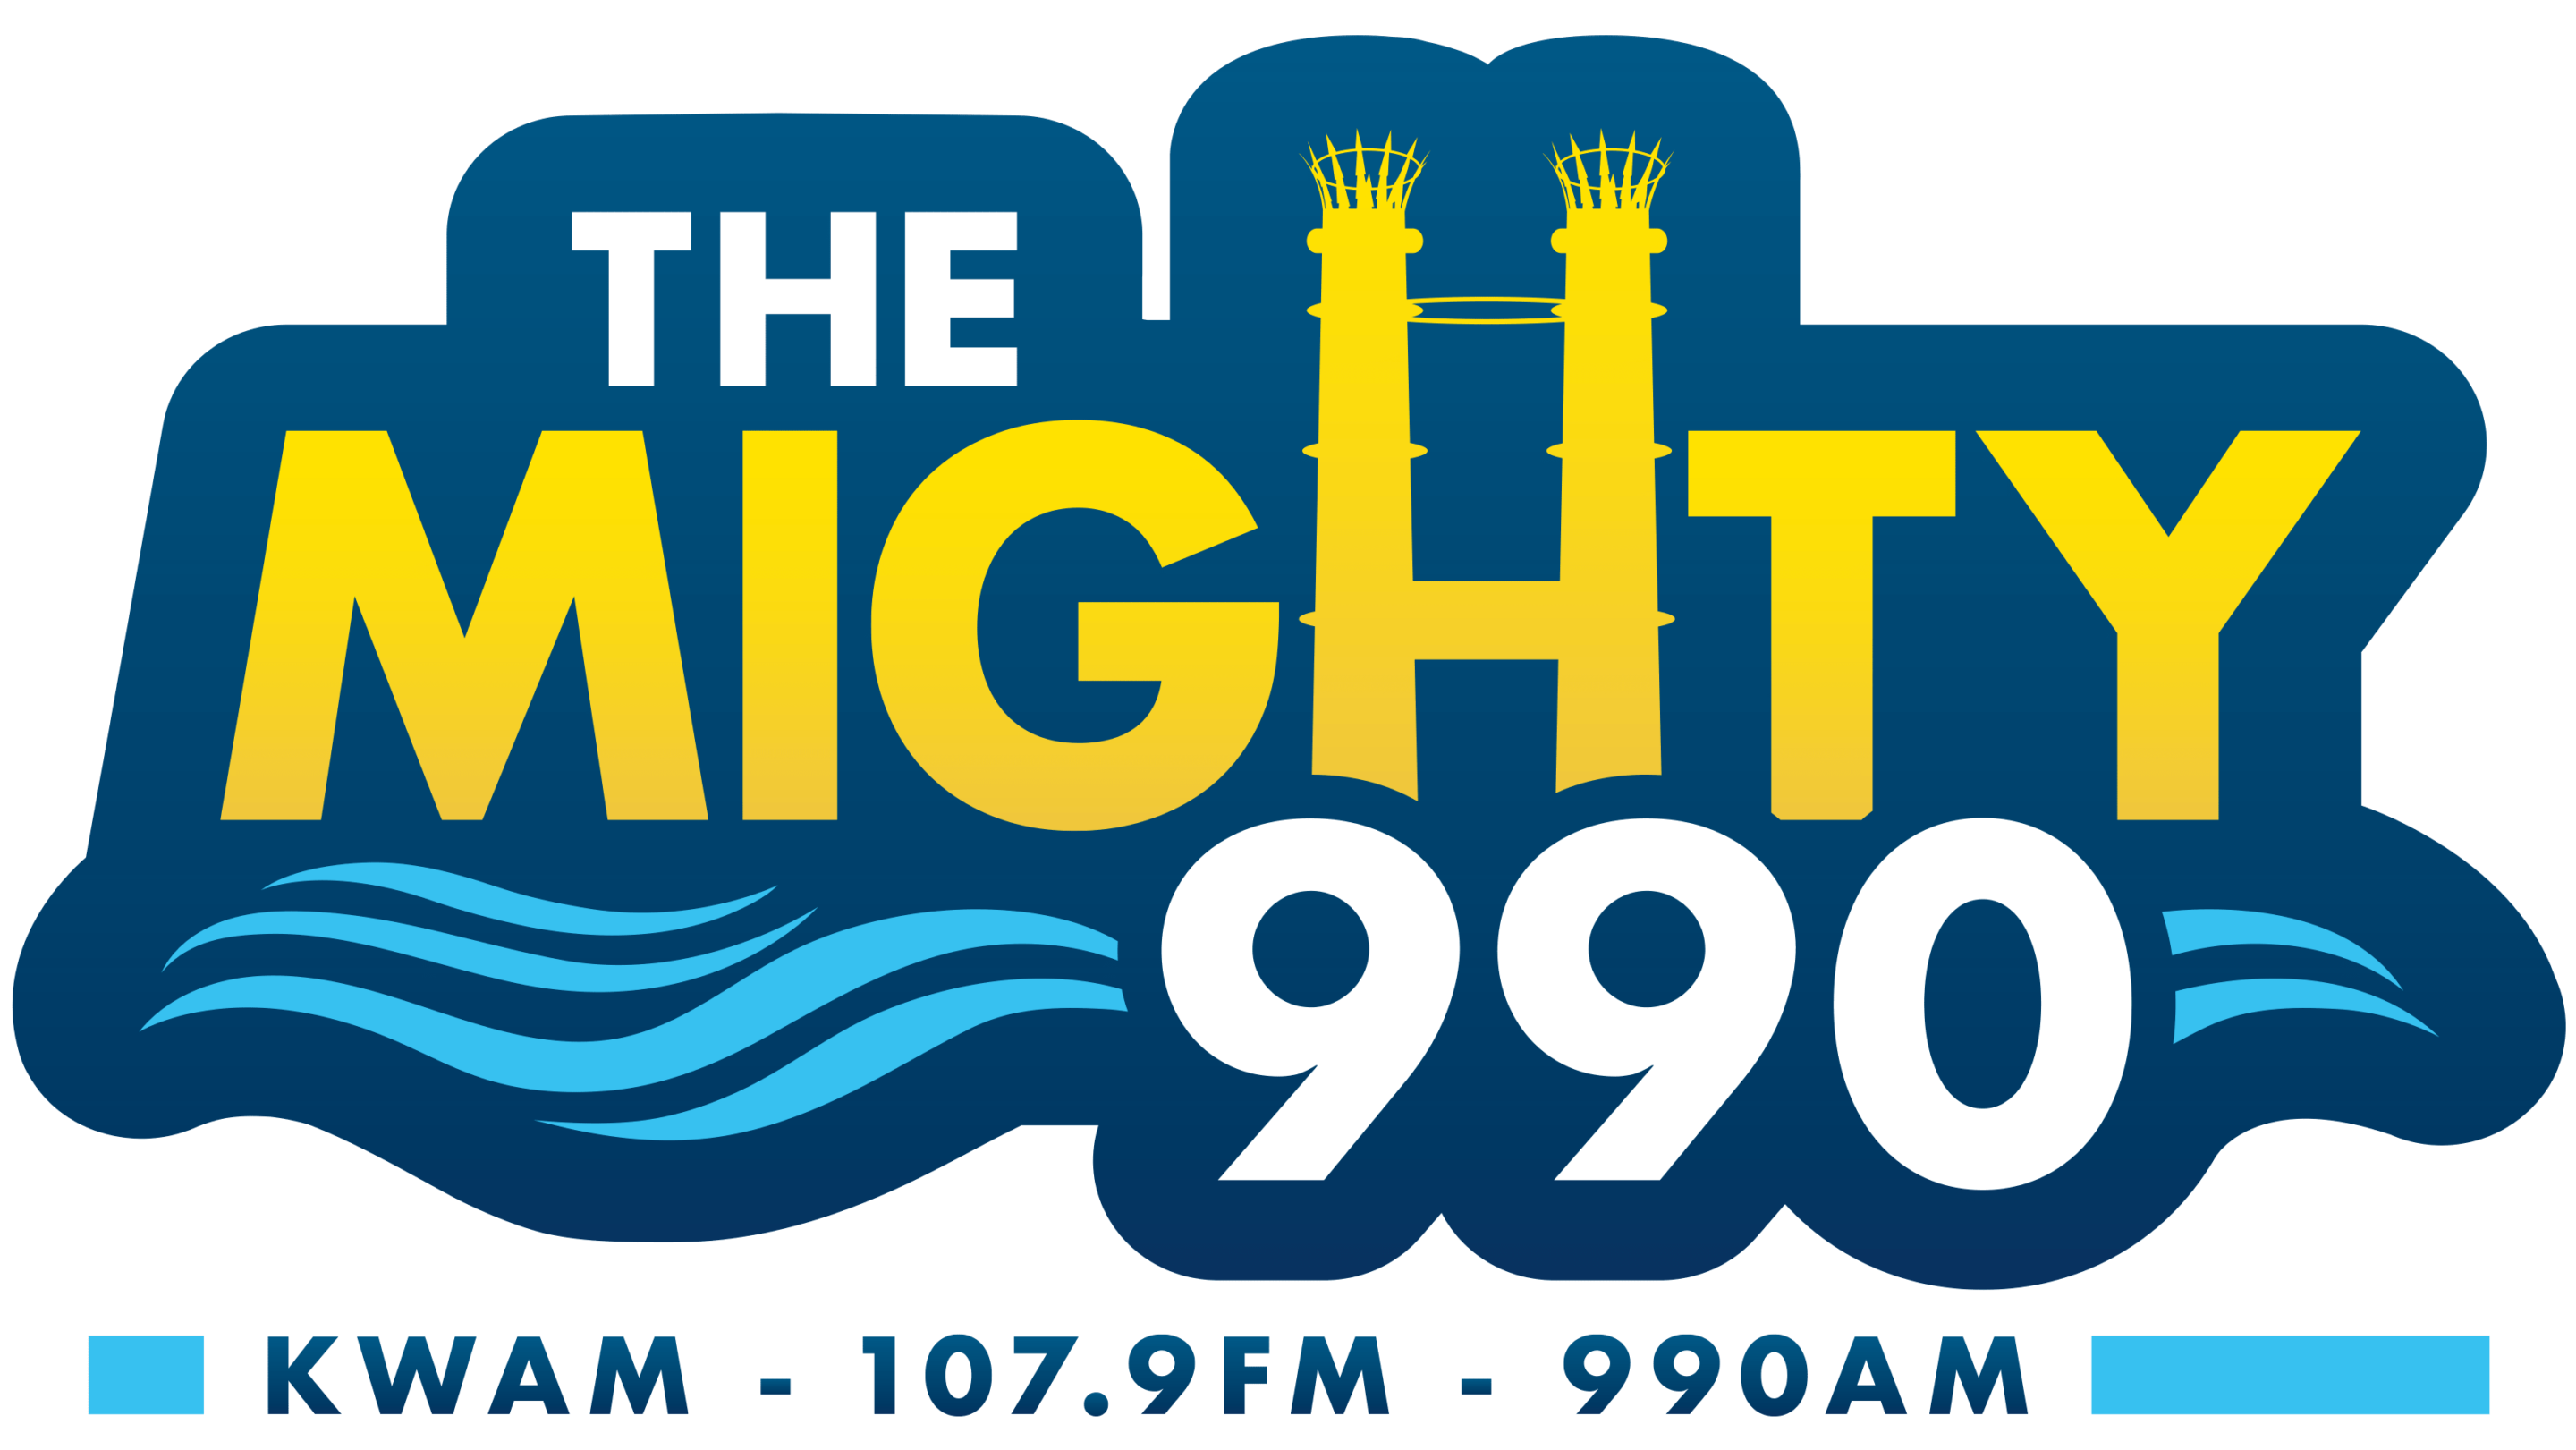 KWAM - THE MIGHTY 990 - Your Home for News, Traffic and Weather